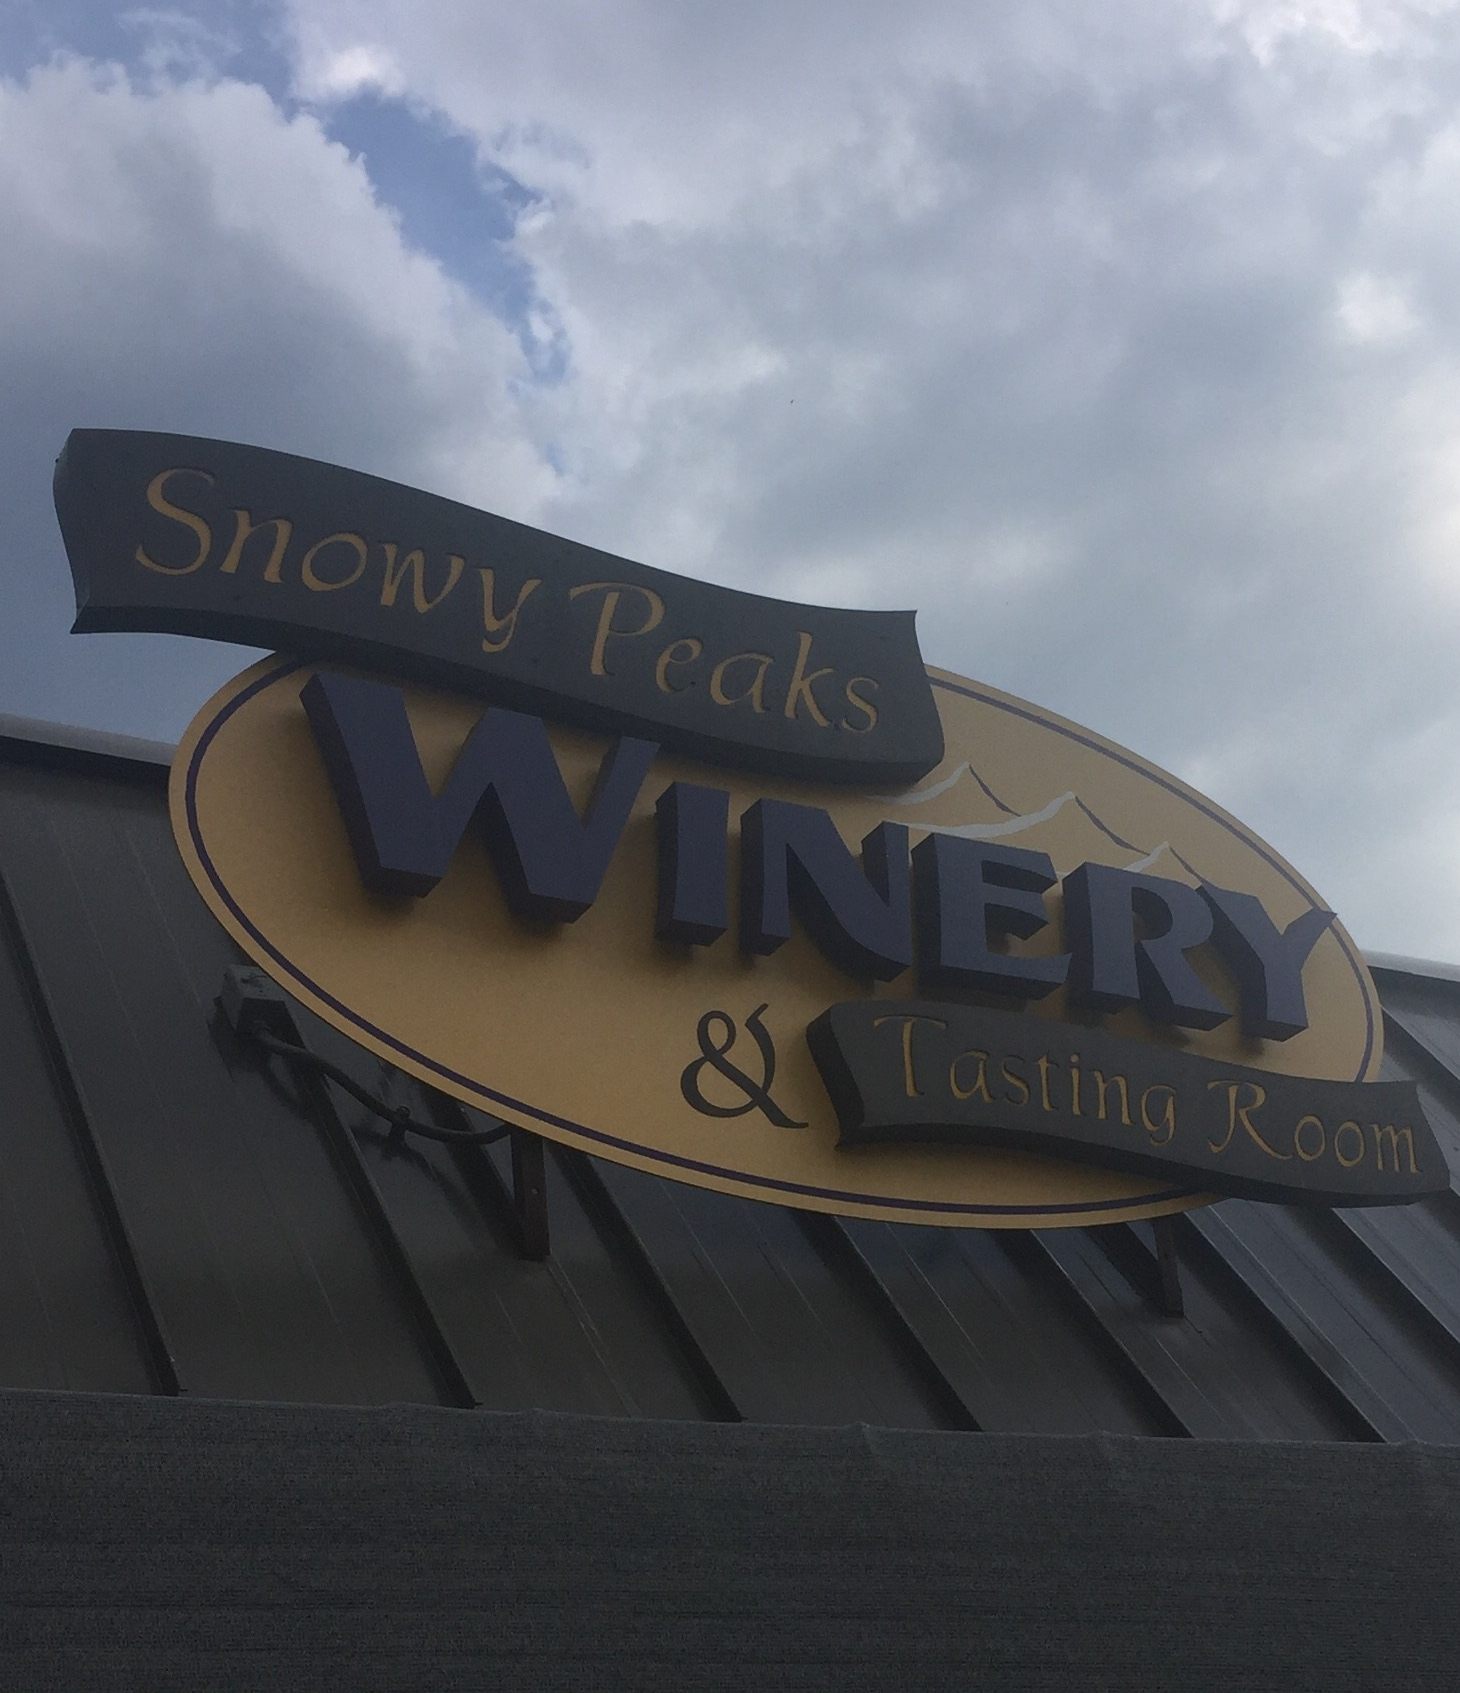 Snowy Peaks Winery and tasting room in Estes Park, Colorado